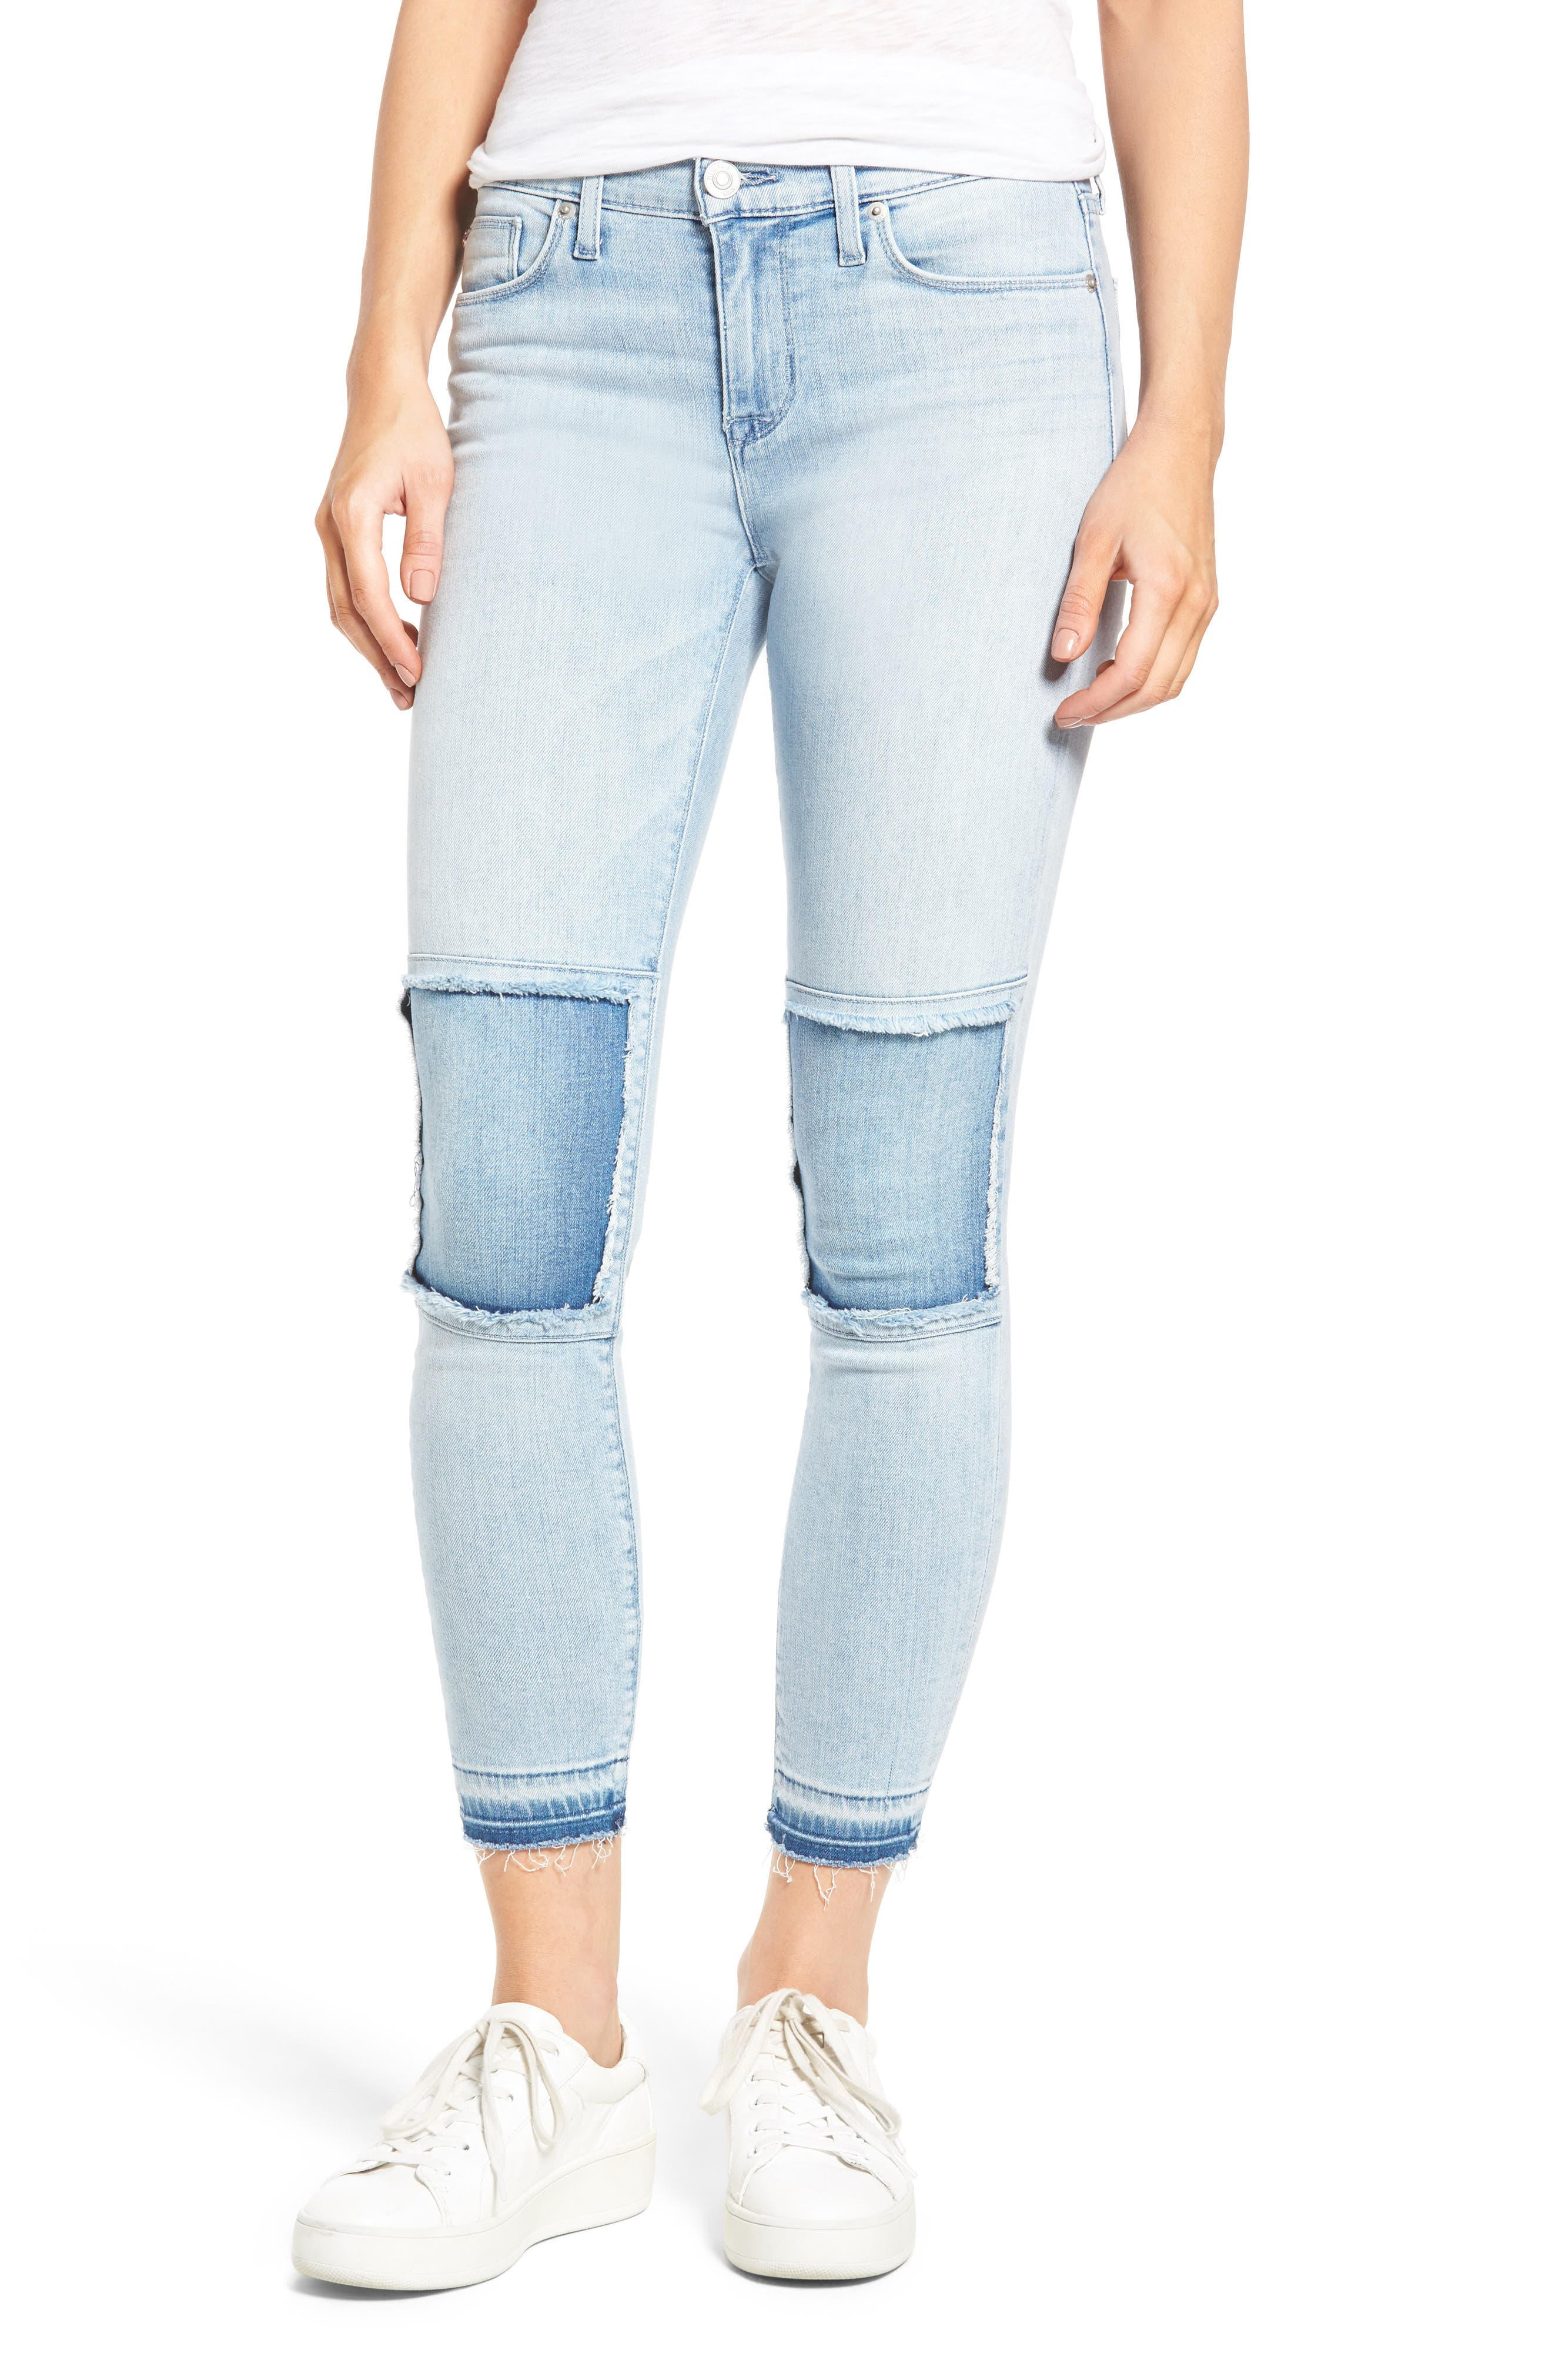 Alternate Image 1 Selected - Hudson Jeans Szzi Mid Rise Patched Skinny Jeans (Venue)